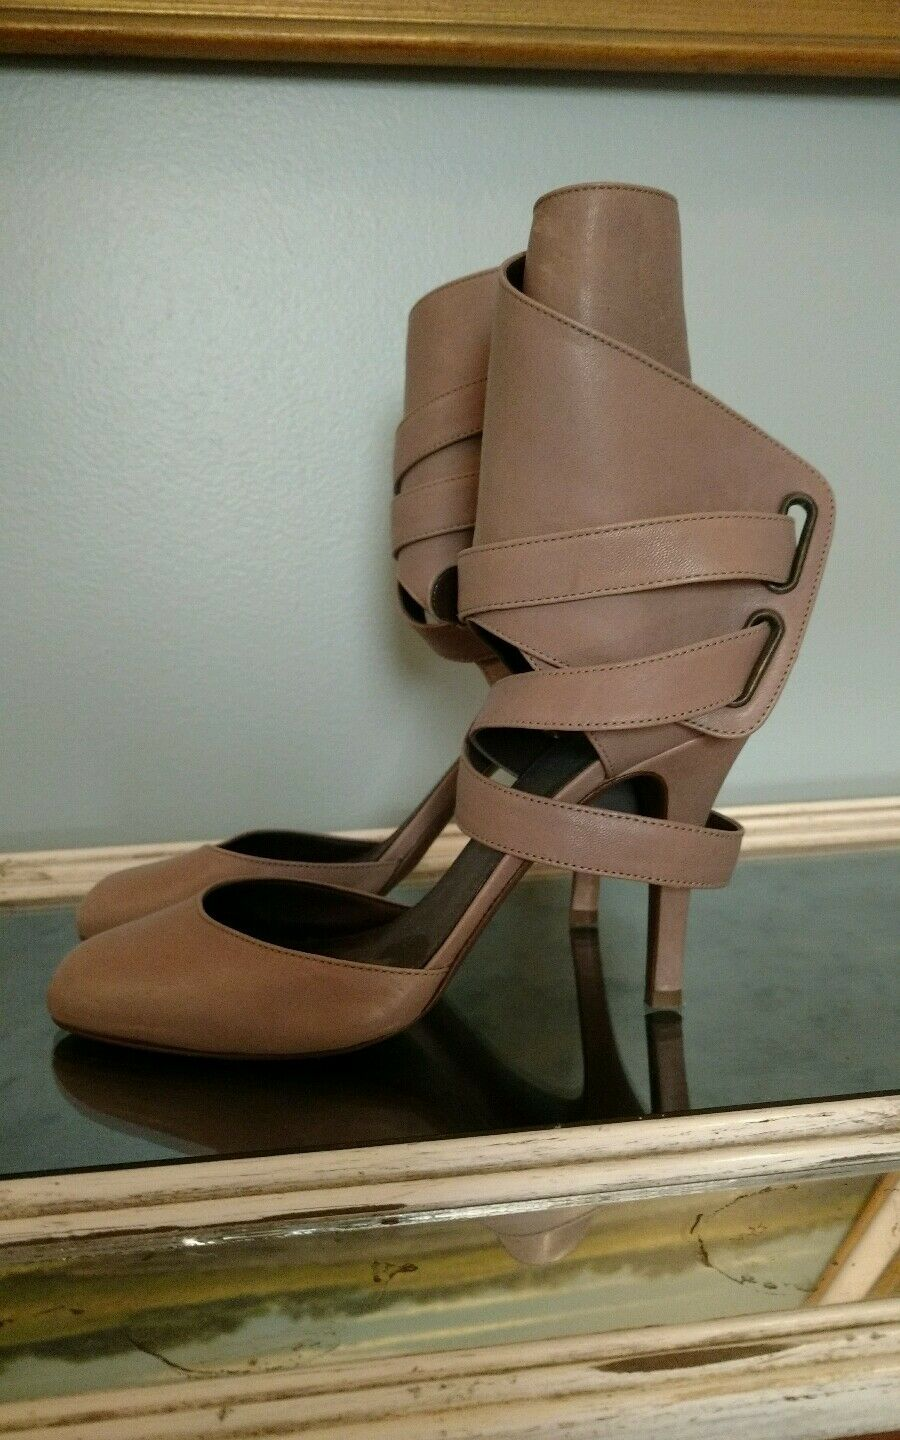 J crew Womens pumps Leather  size 7